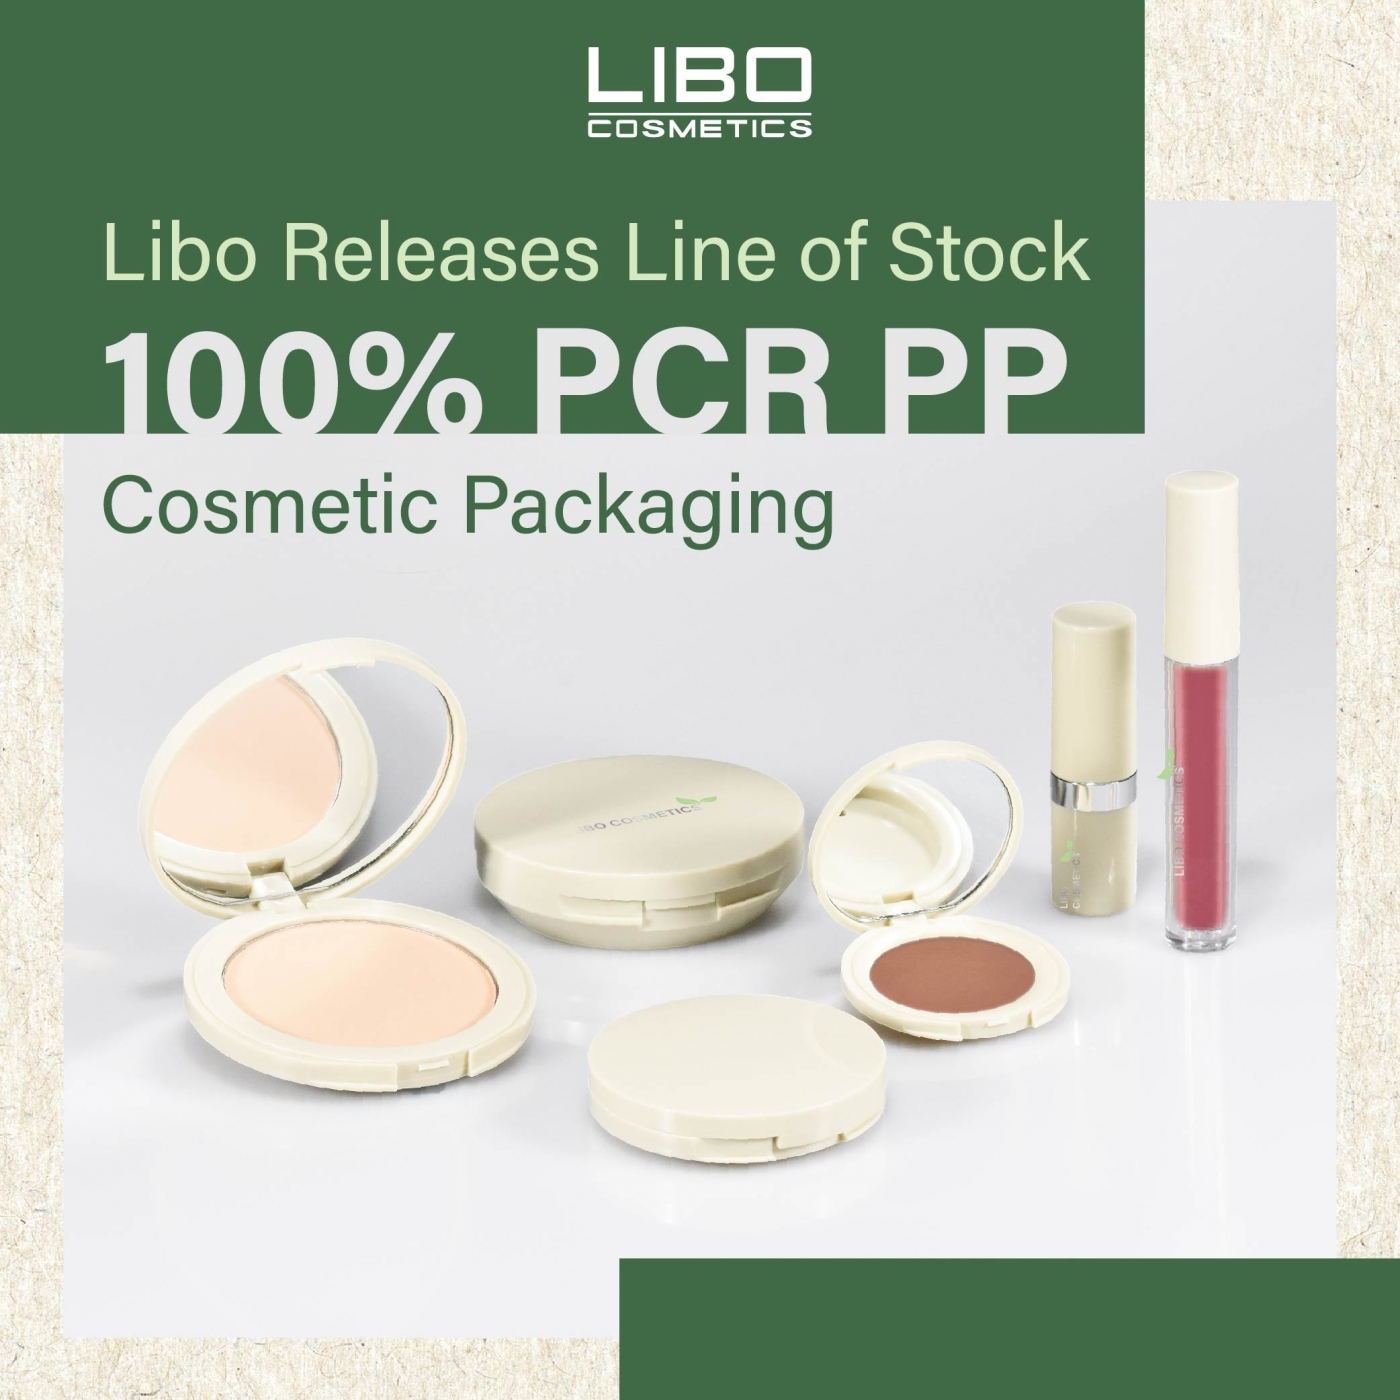 Libo Releases Line of Stock 100% PCR PP Cosmetic Packaging